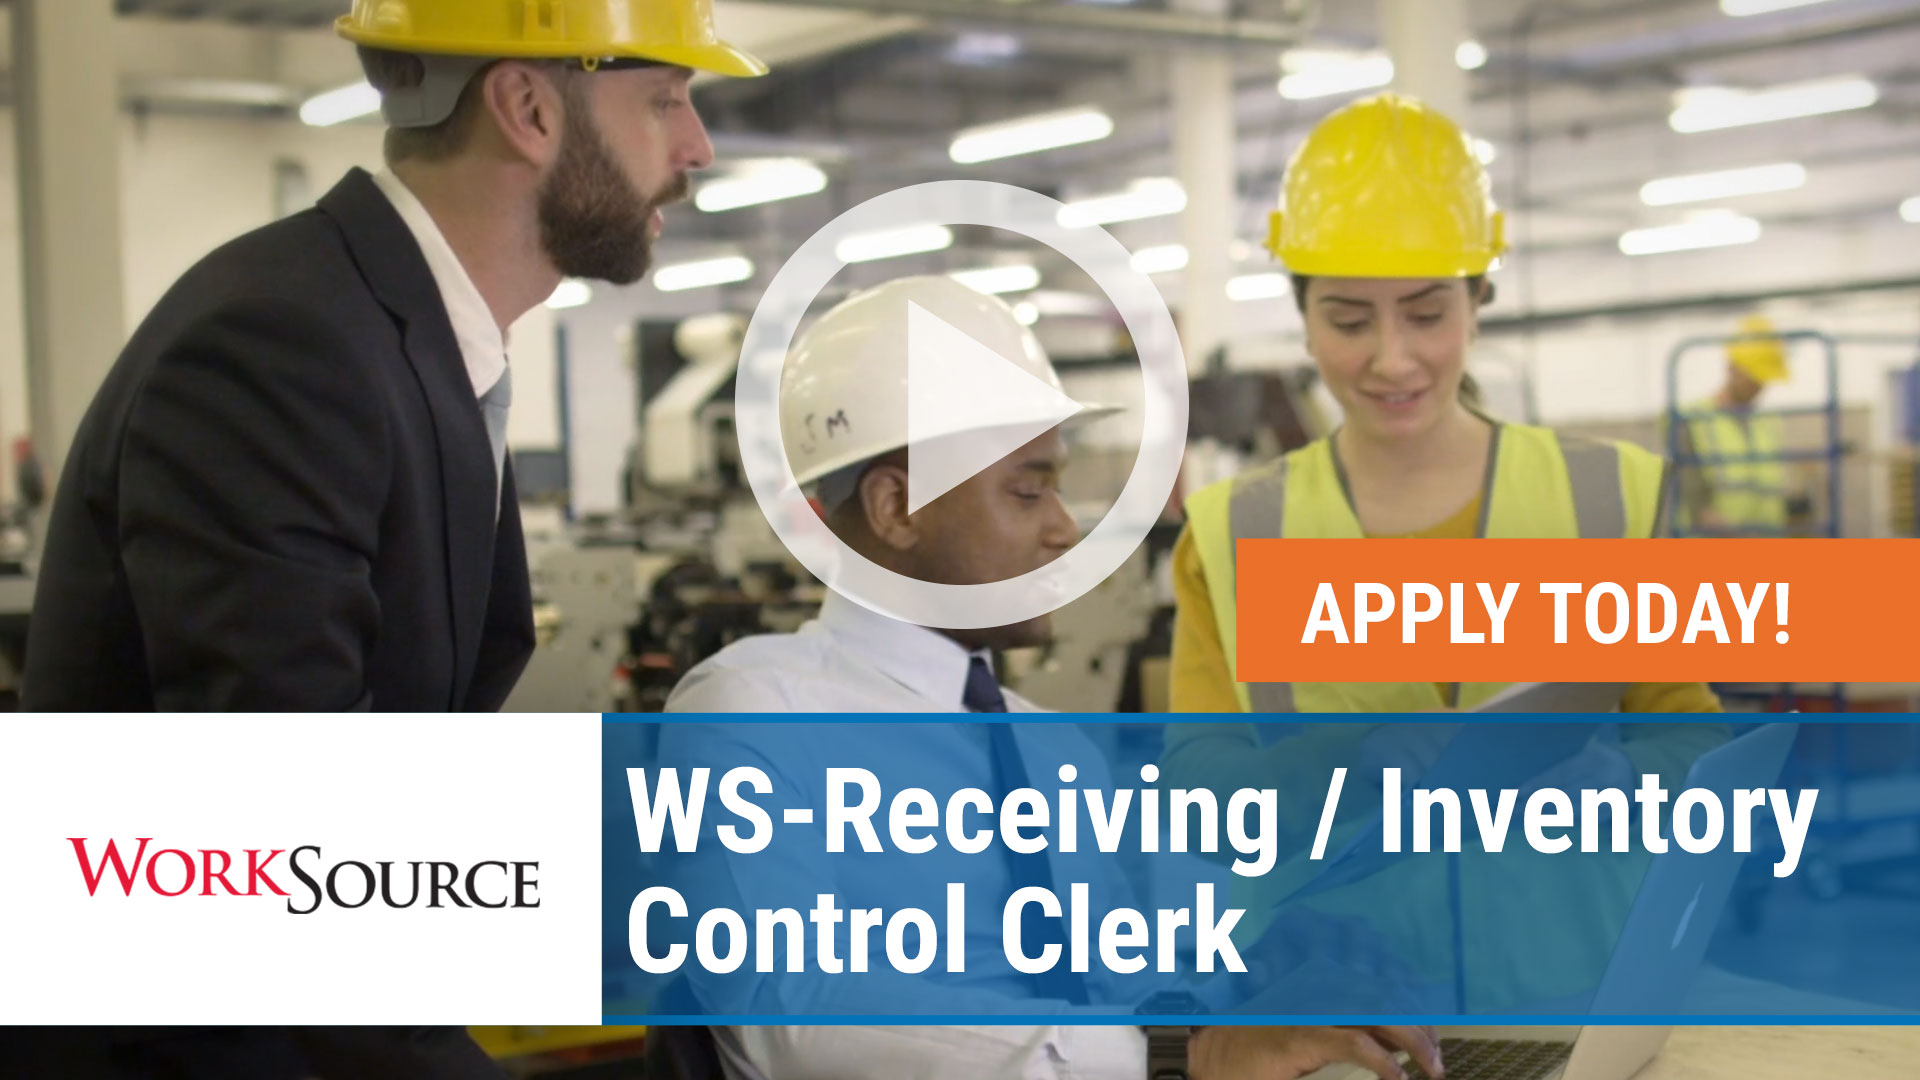 Watch our careers video for available job opening WS Receiving - Inventory Control Clerk in Decatur, Arkansas